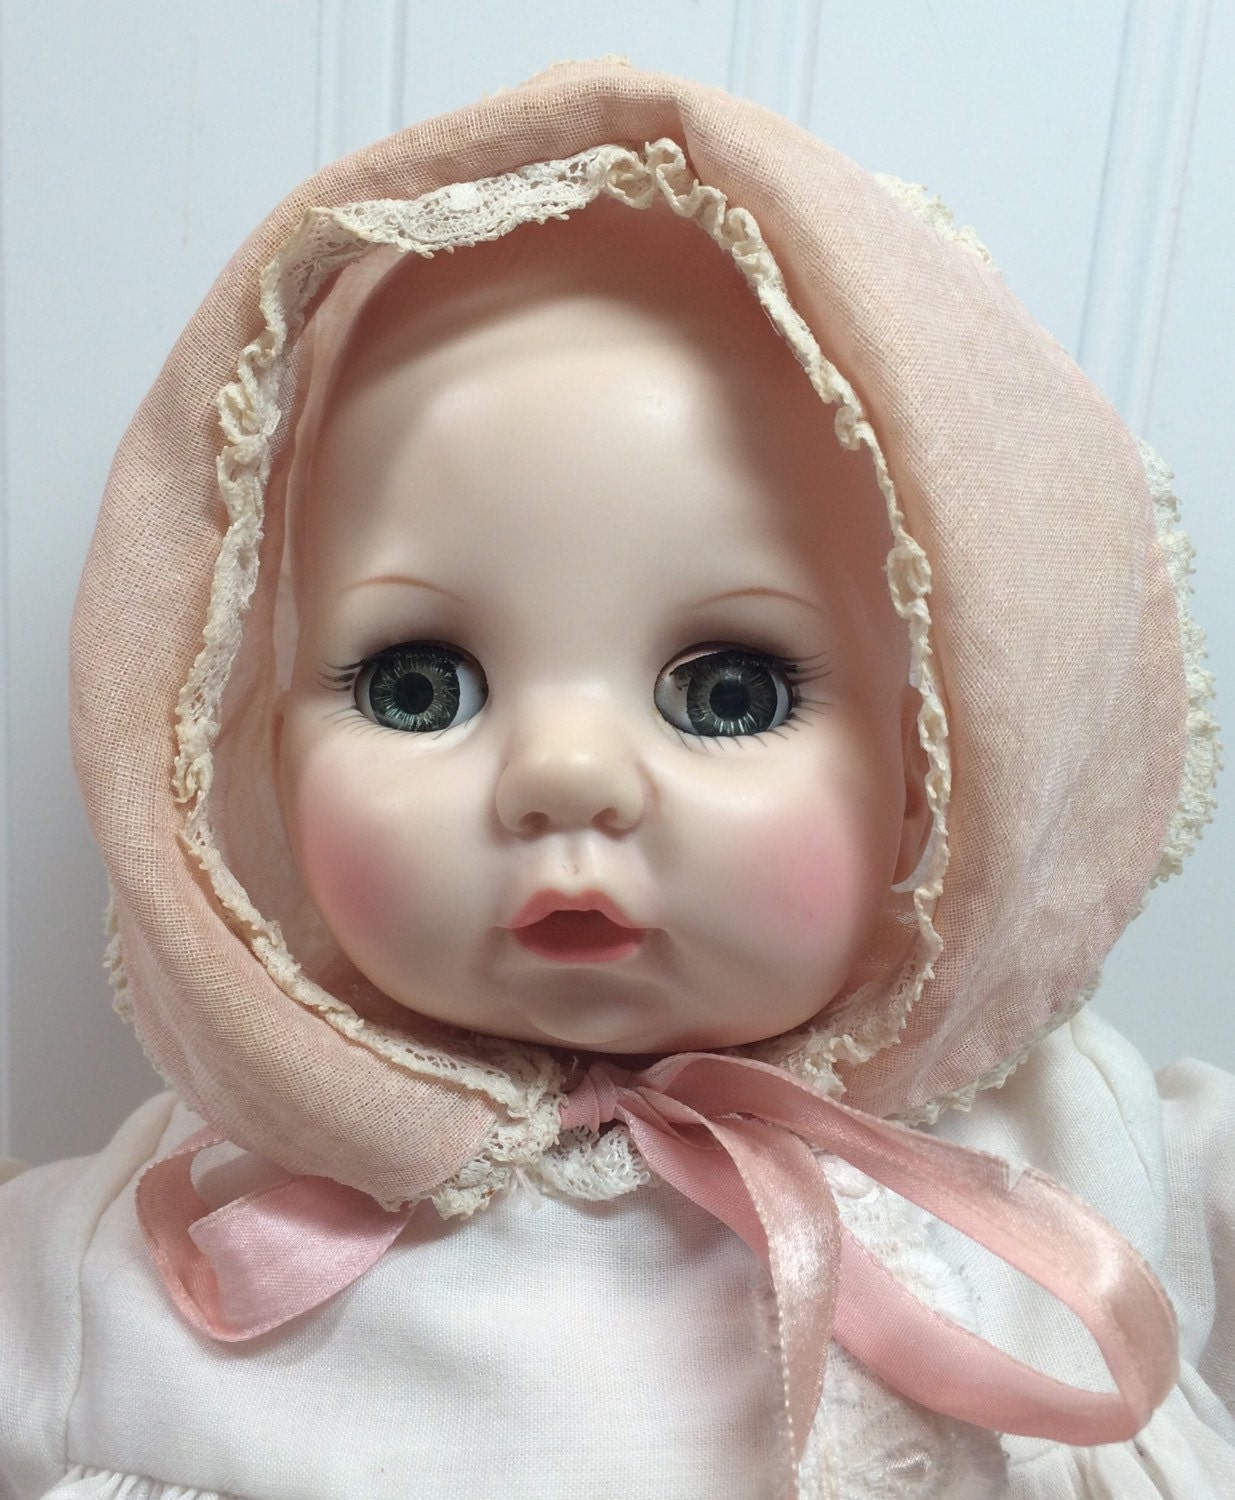 Baby Doll Doll Crying Baby Doll Madame By Ateliermandaline